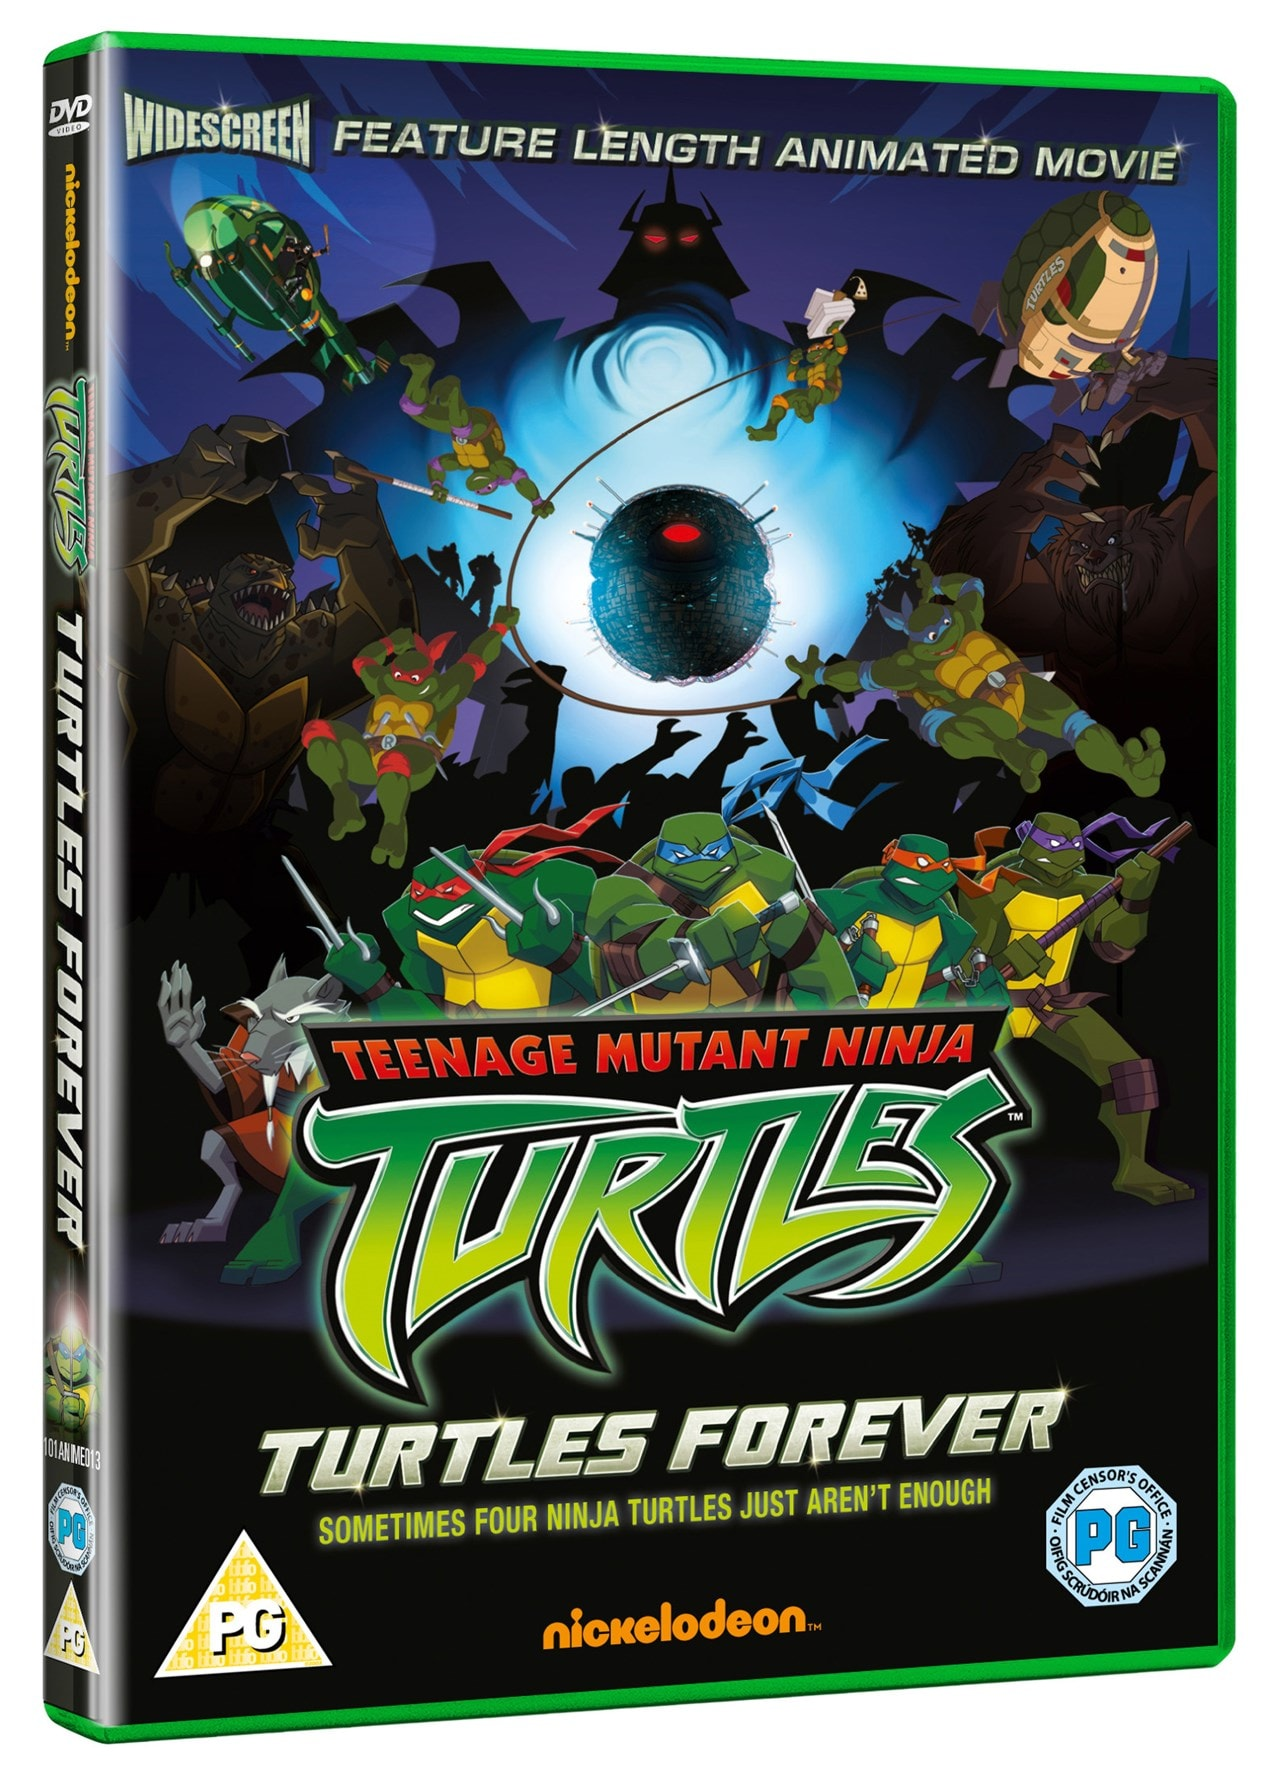 Teenage Mutant Ninja Turtles: Turtles Forever - 2